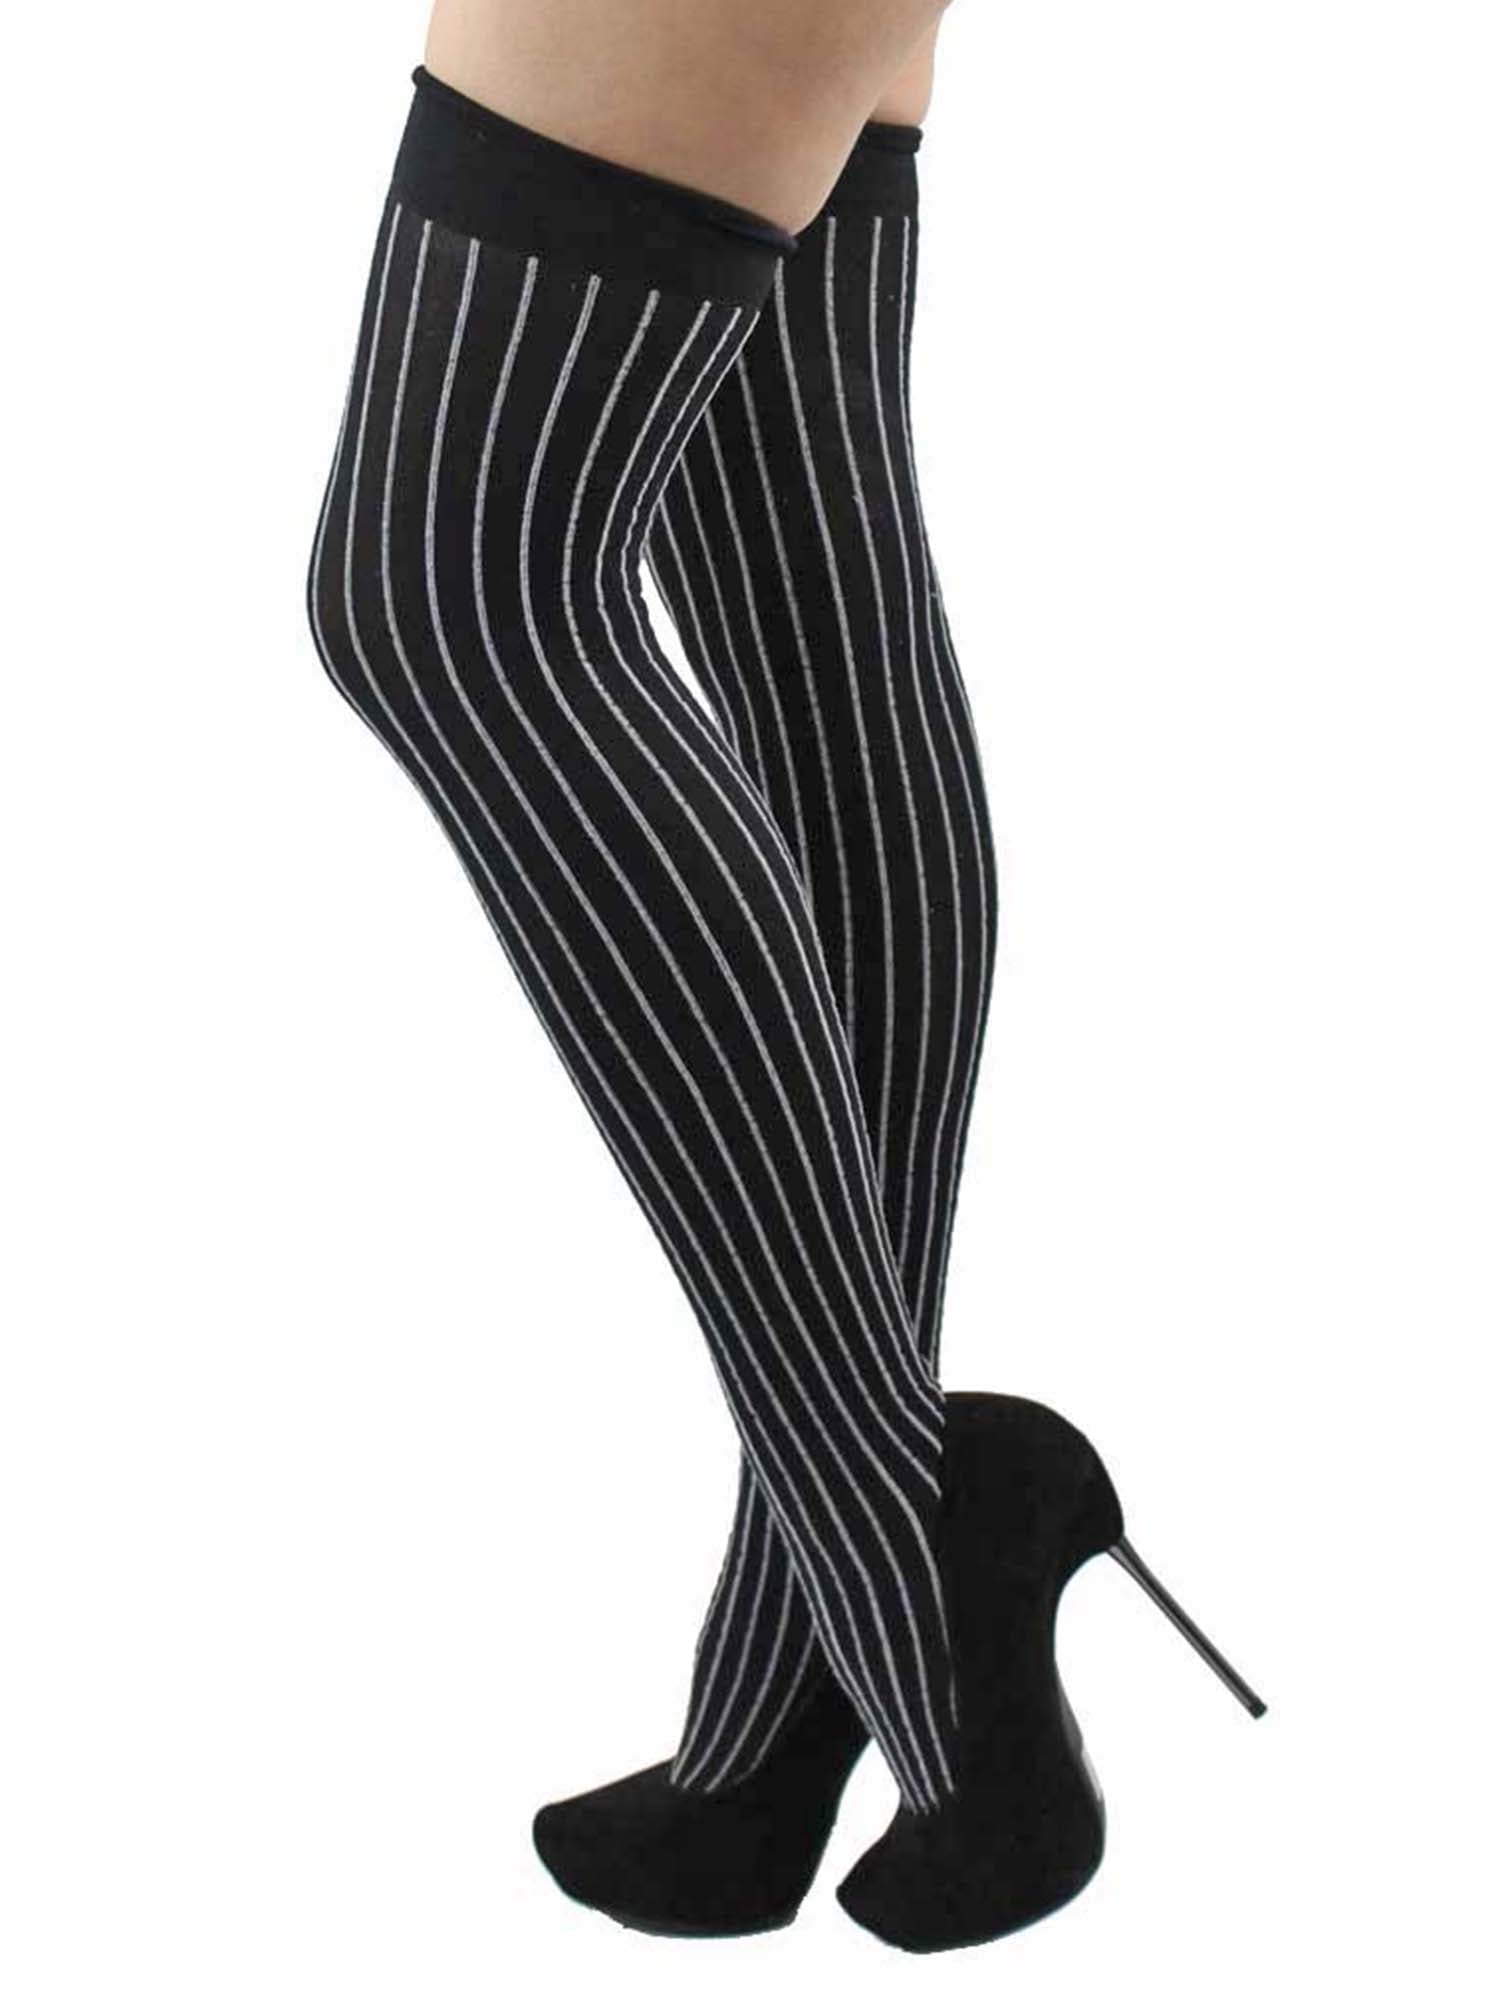 Black & Gray Pinstripe Thigh High Stockings For Women